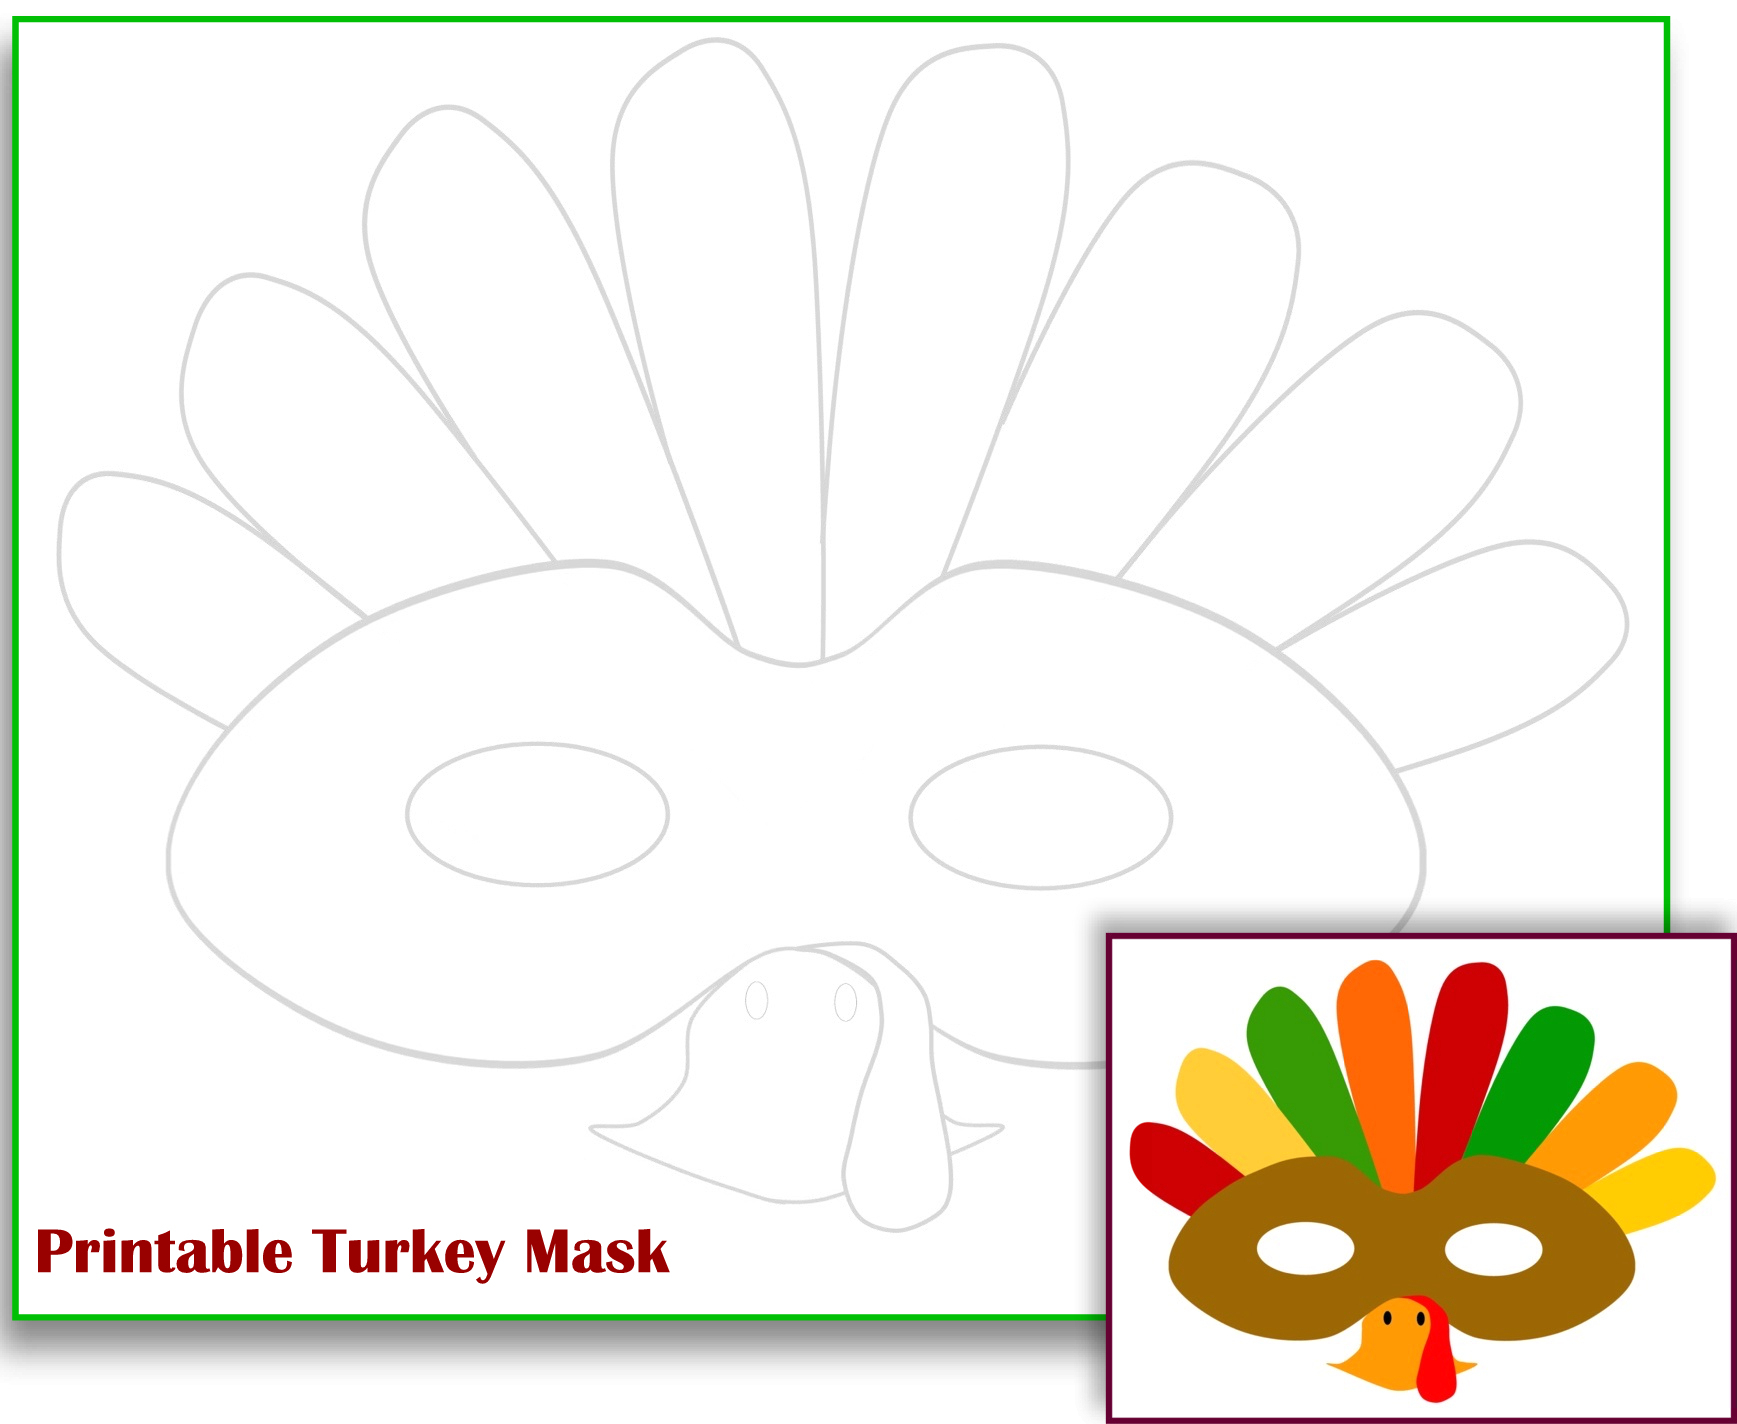 Free Printable Turkey Template - Accraconsortium - Free Turkey Cut Out Printable